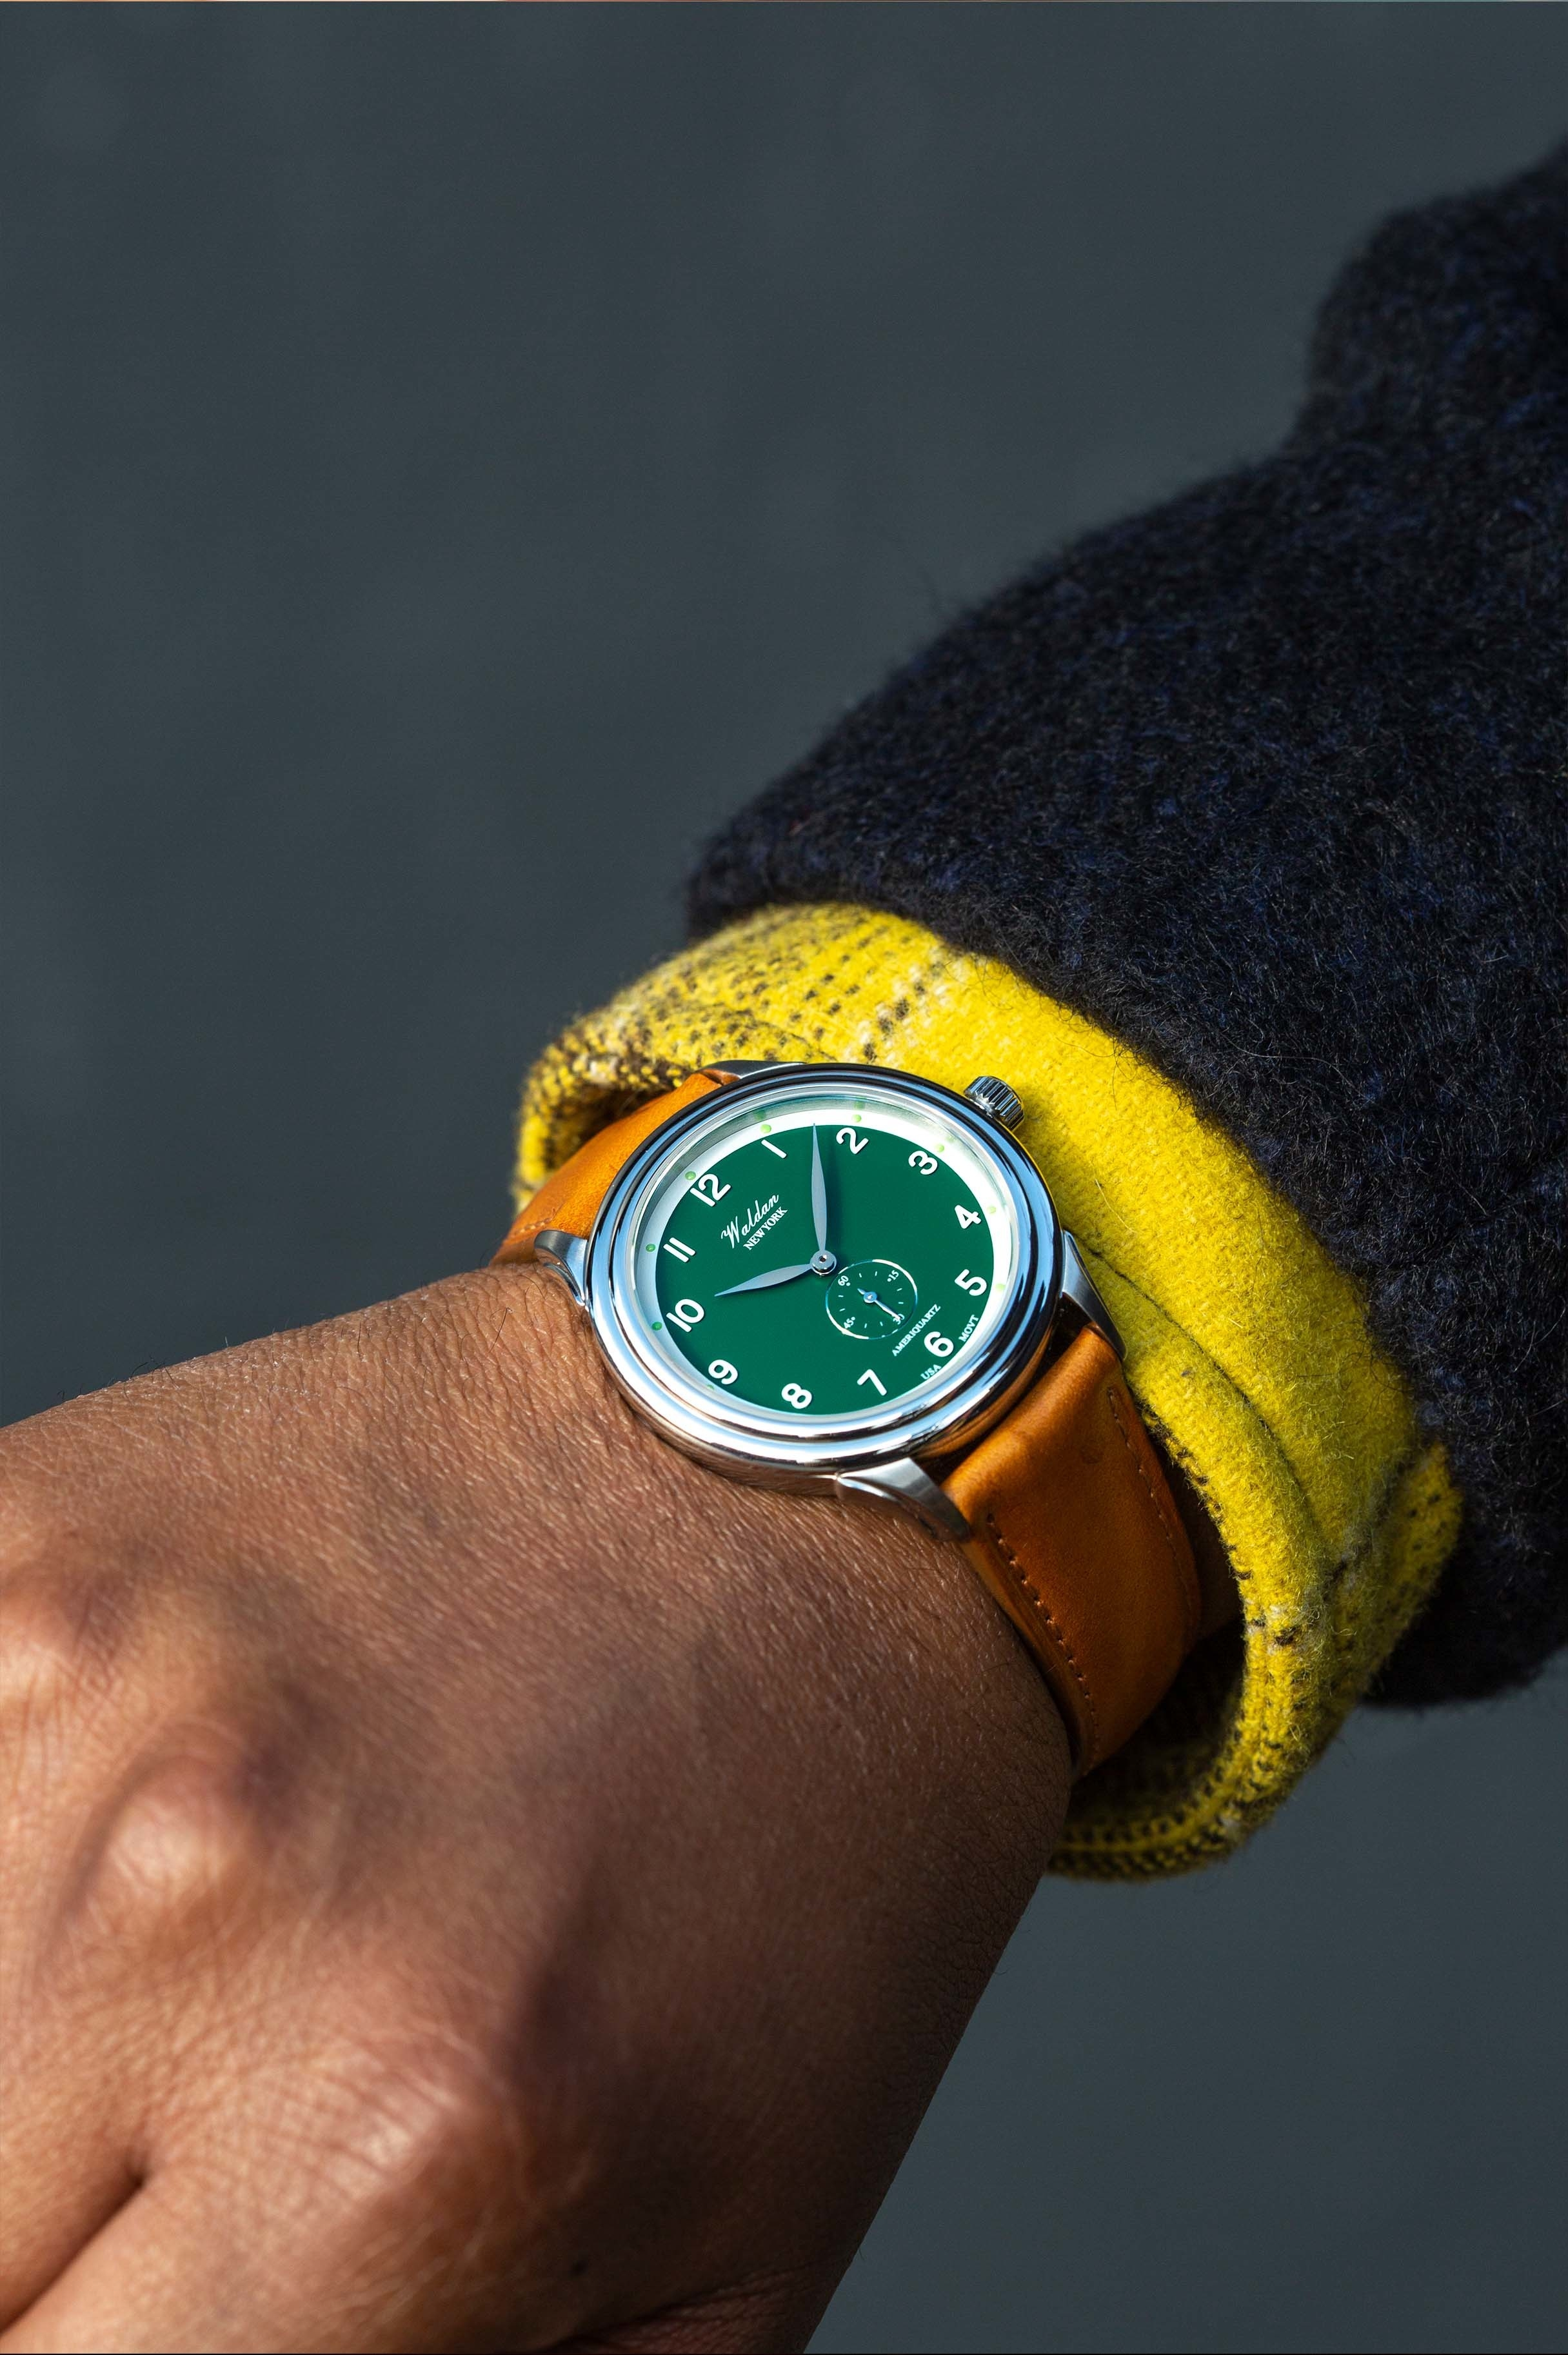 a model wearing a watch with a green face and brown leather band